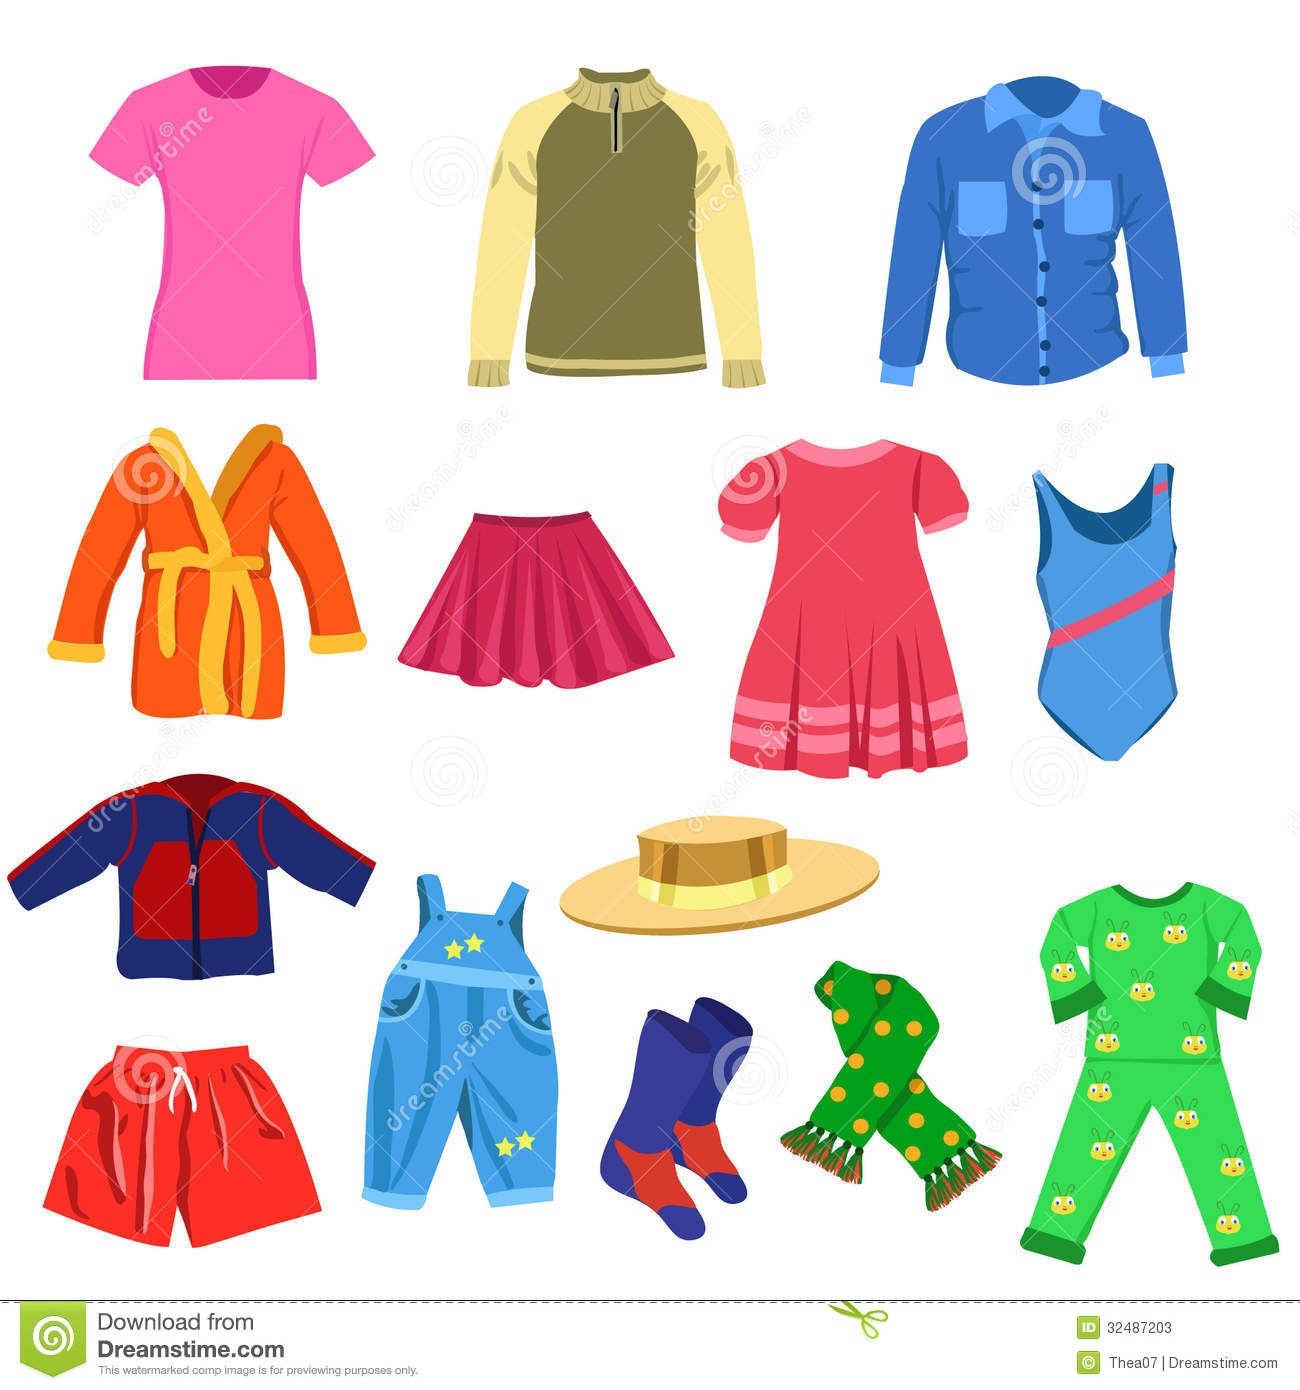 Children's clothing clipart - Clipground